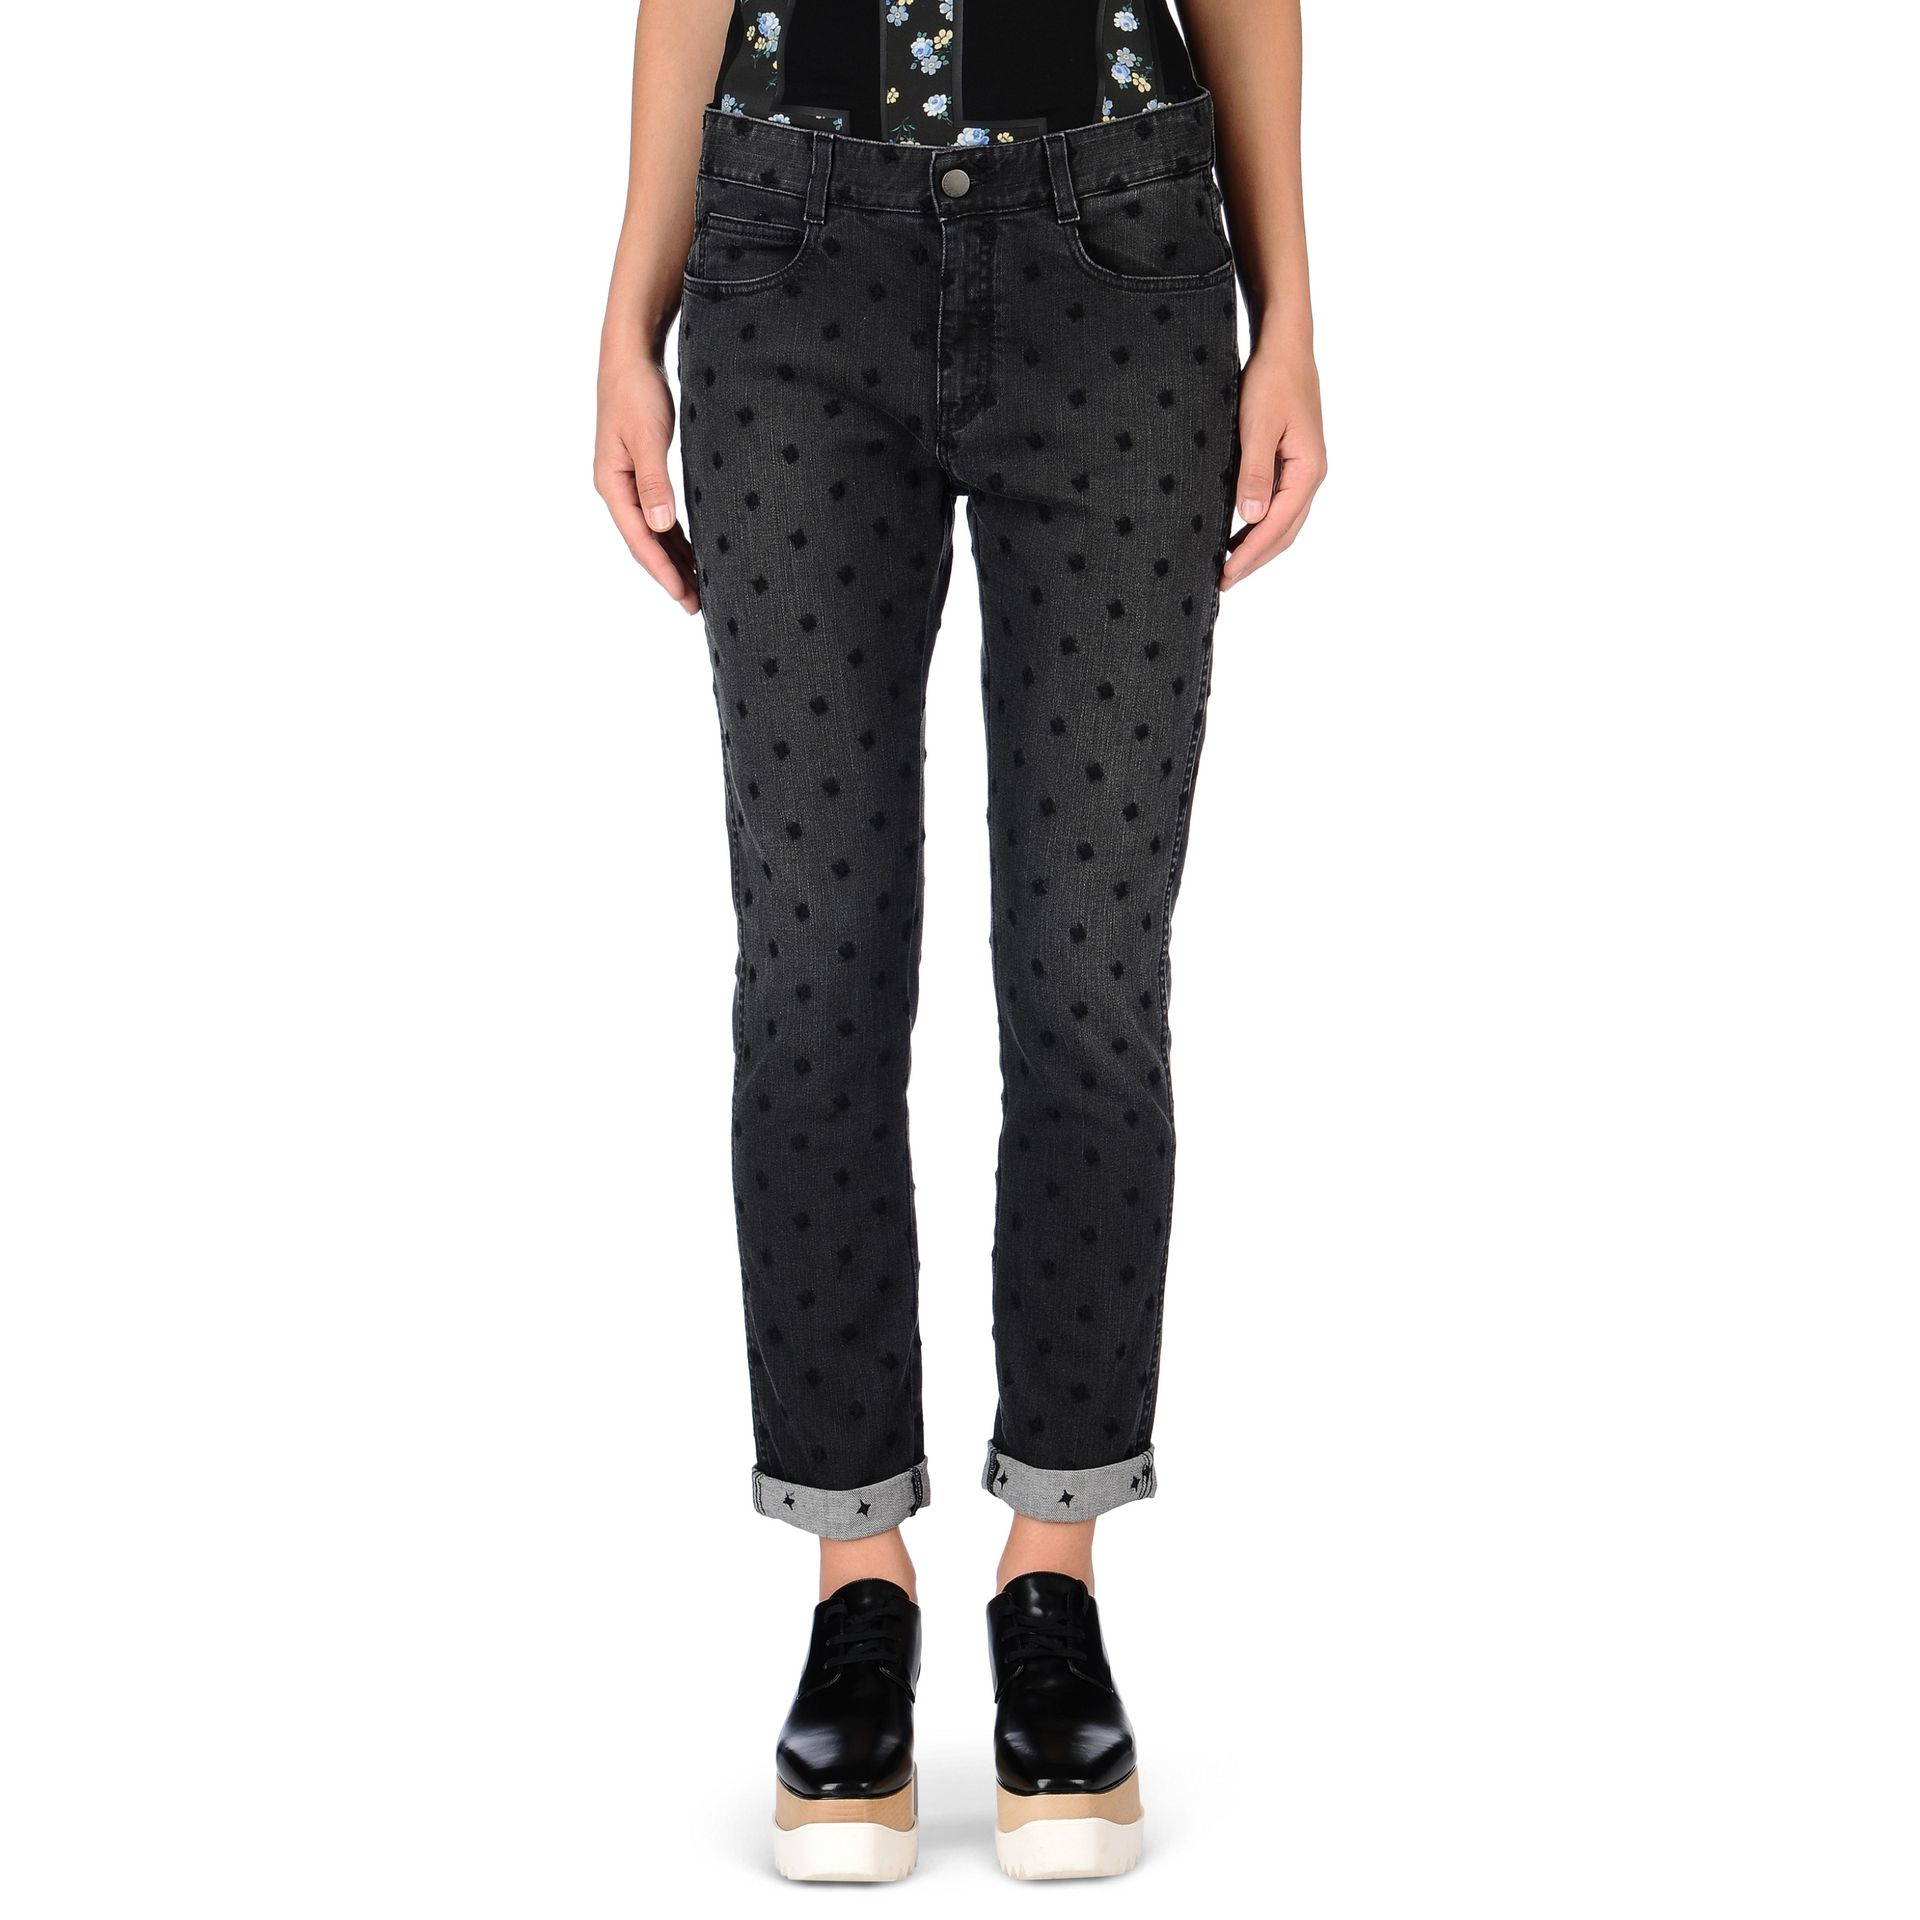 Stella mccartney Skinny Boyfriend Black Star Jeans in Black | Lyst